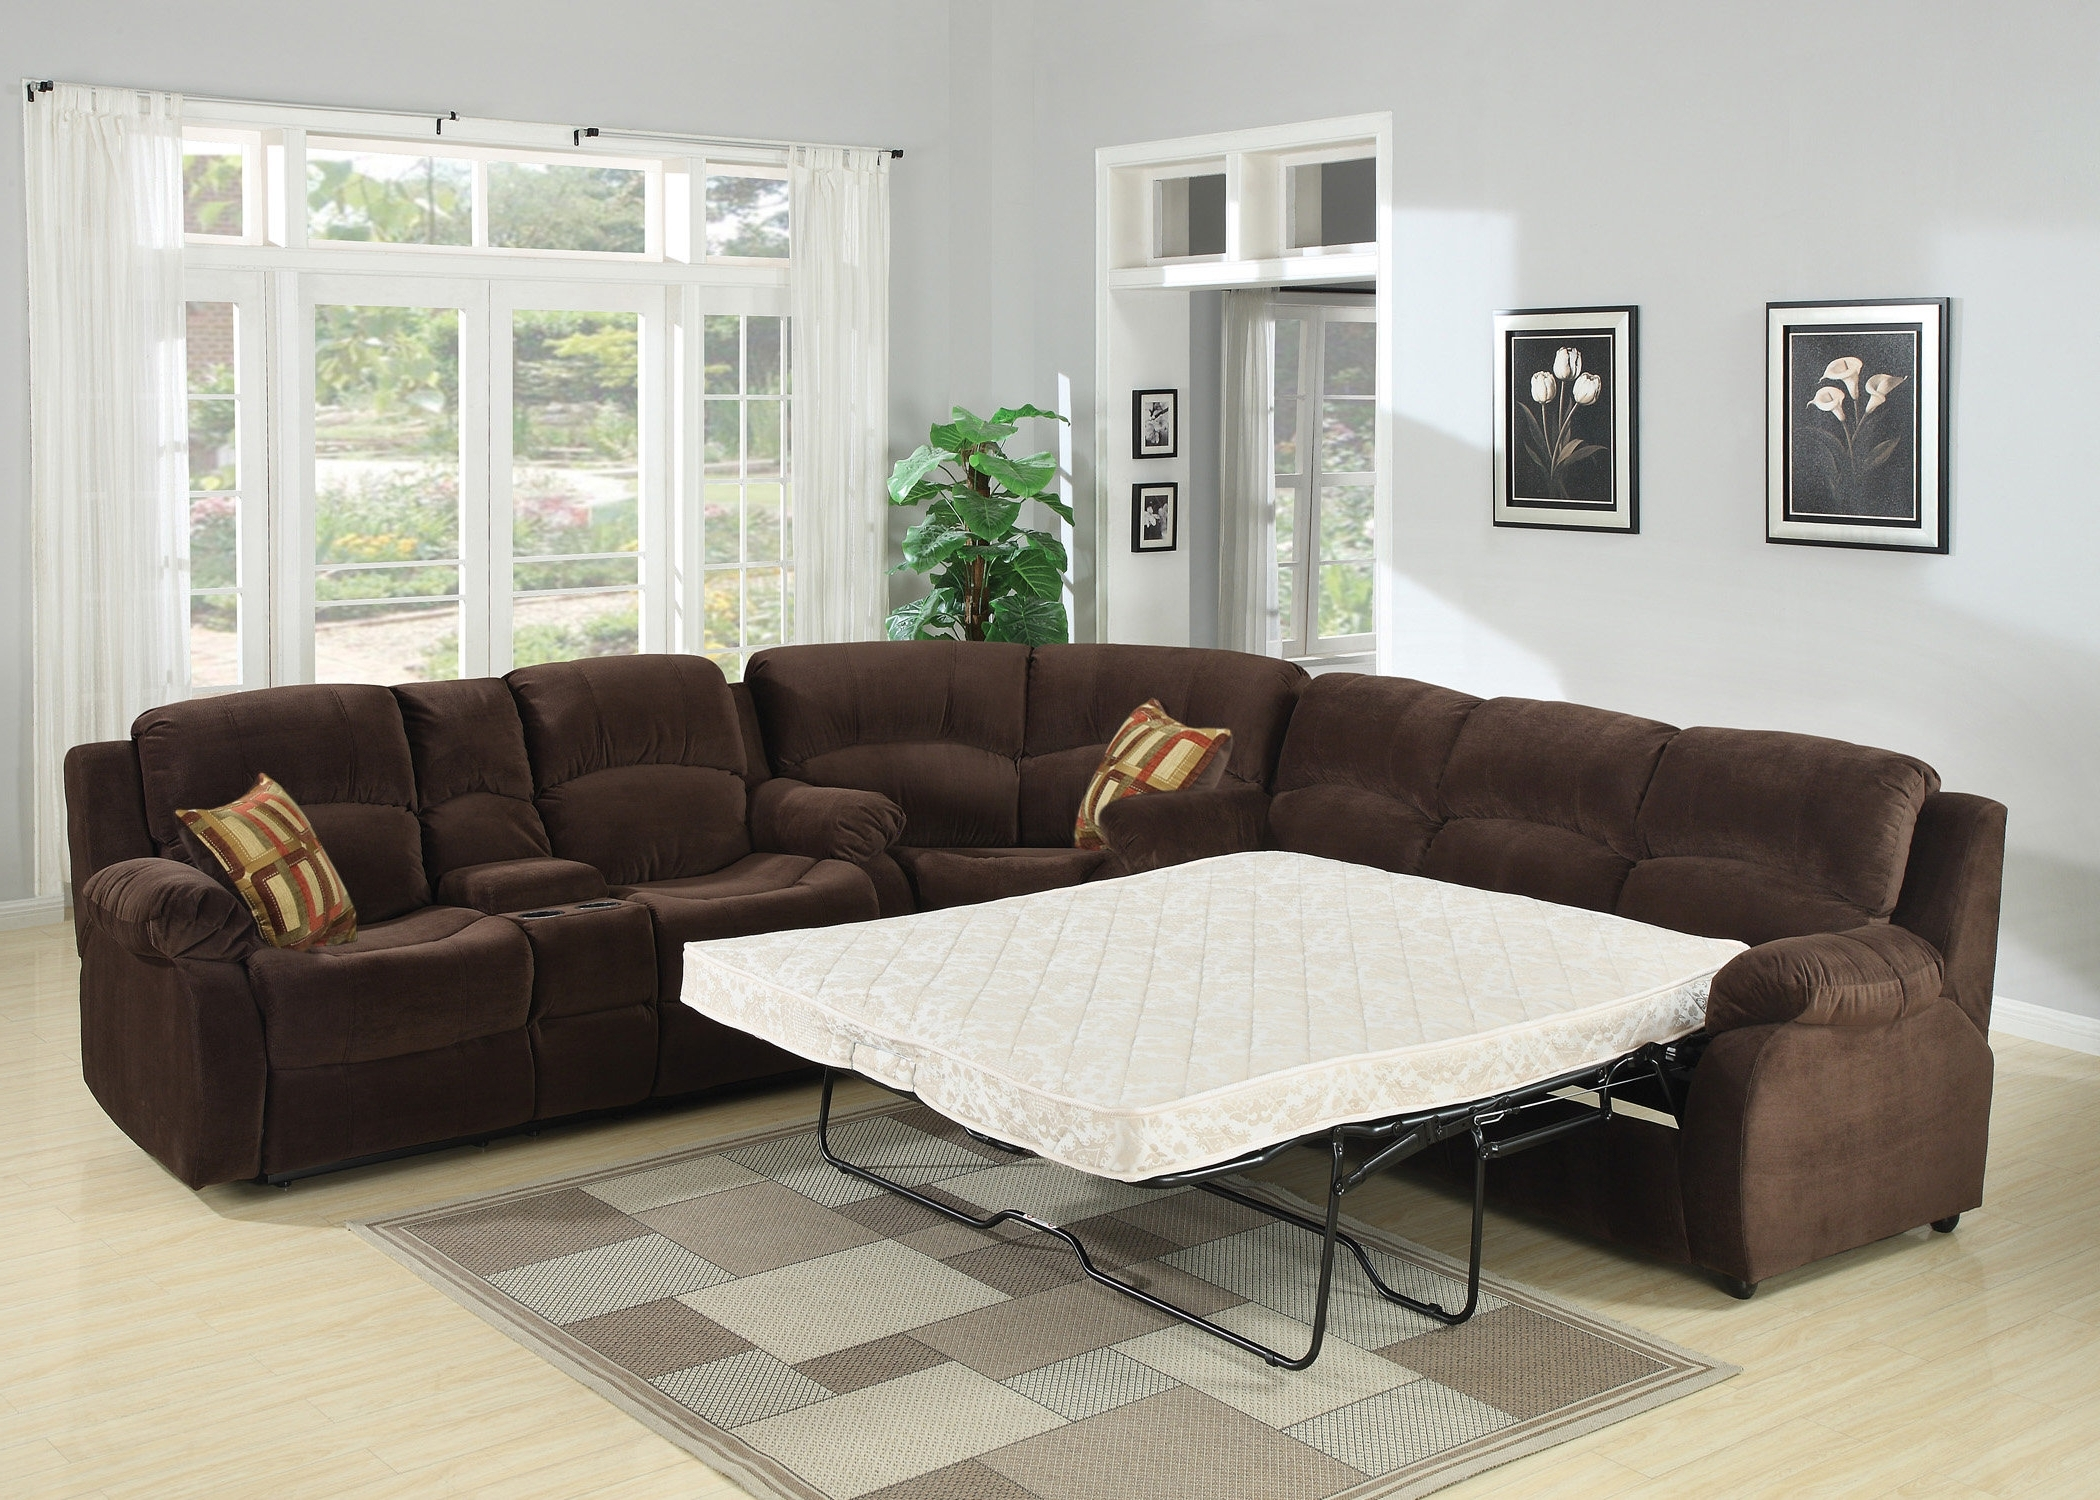 Famous Sleeper Sectional Sofas You'll Love (View 4 of 15)